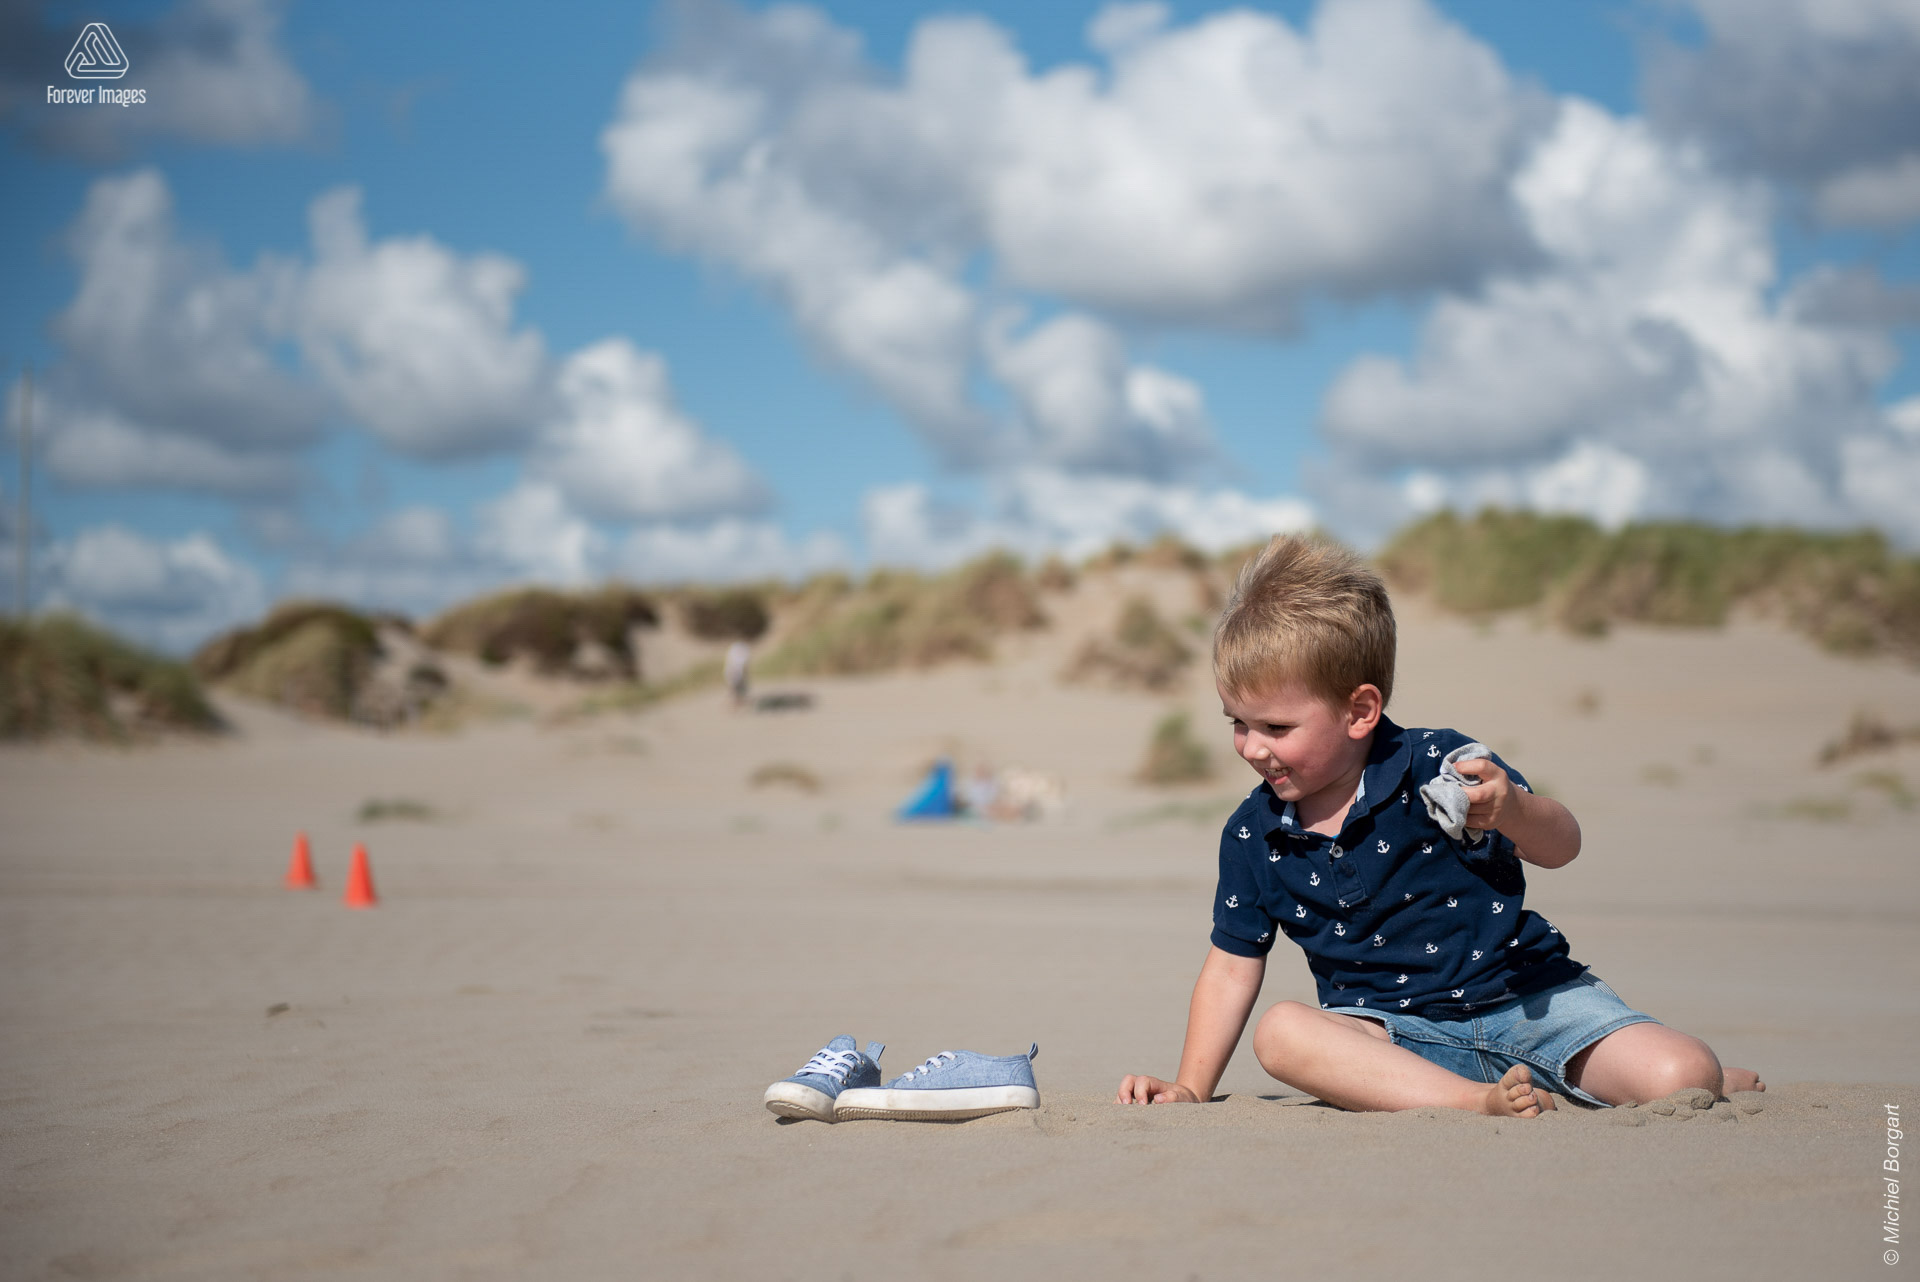 Childrens photo beach shoes are not allowed | Elias IJmuiden Strand | Portrait Photographer Michiel Borgart Forever Images.